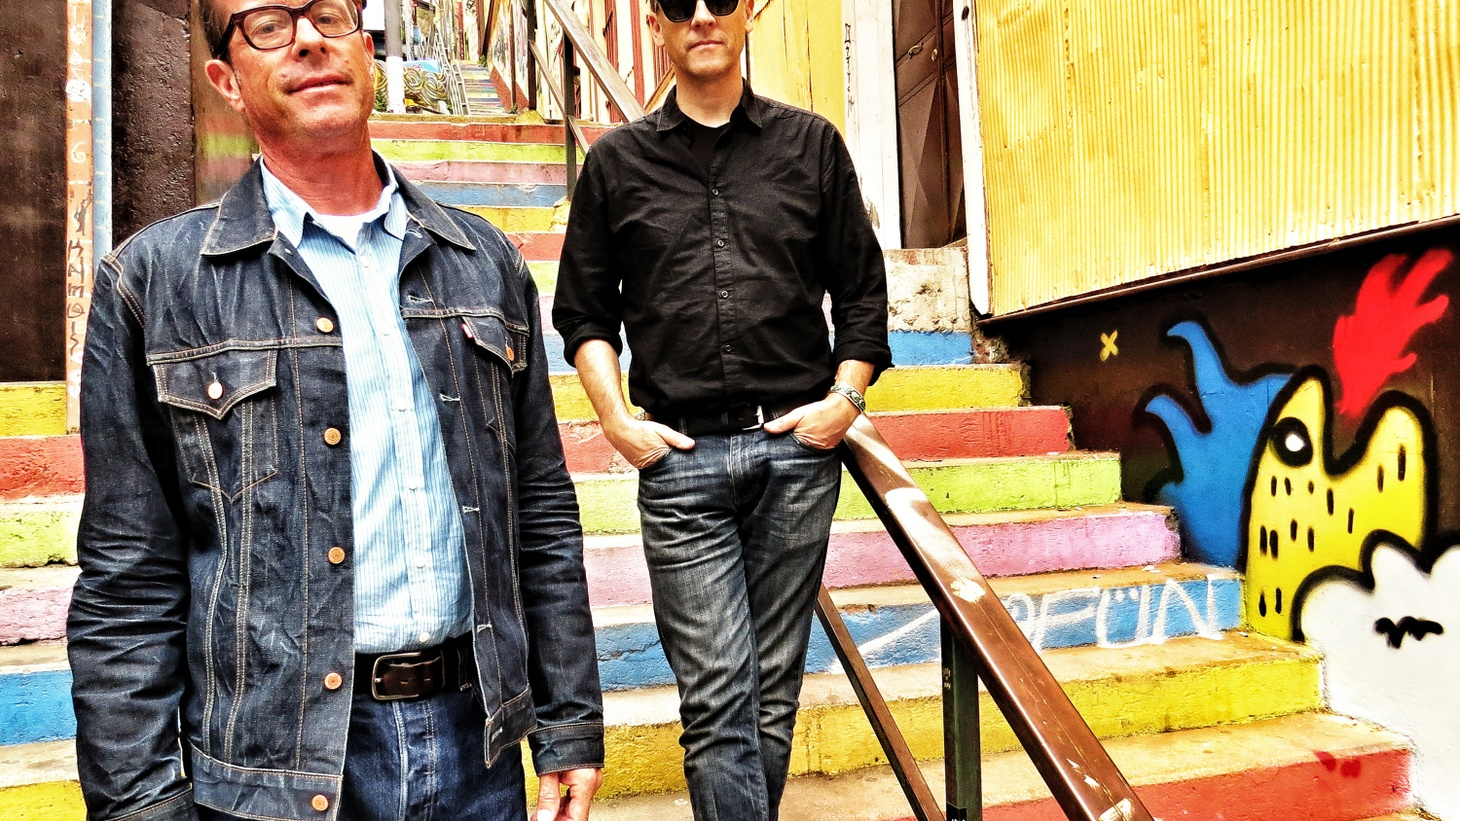 Joey Burns and John Convertino the duo behind Calexico have crossed musical borders with countless trips around the world.